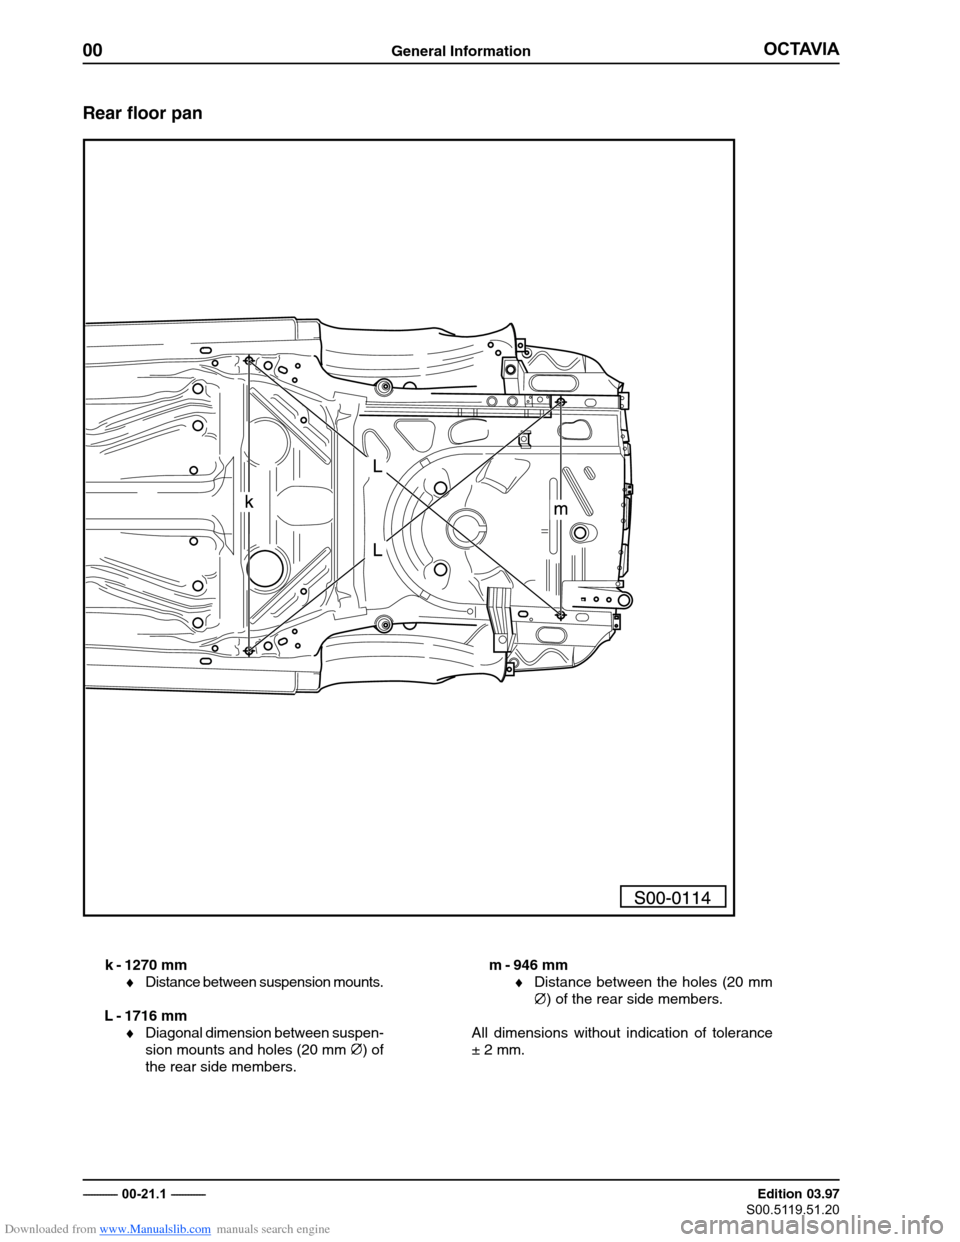 SKODA OCTAVIA 1997 1.G / (1U) Body Repairs Workshop Manual